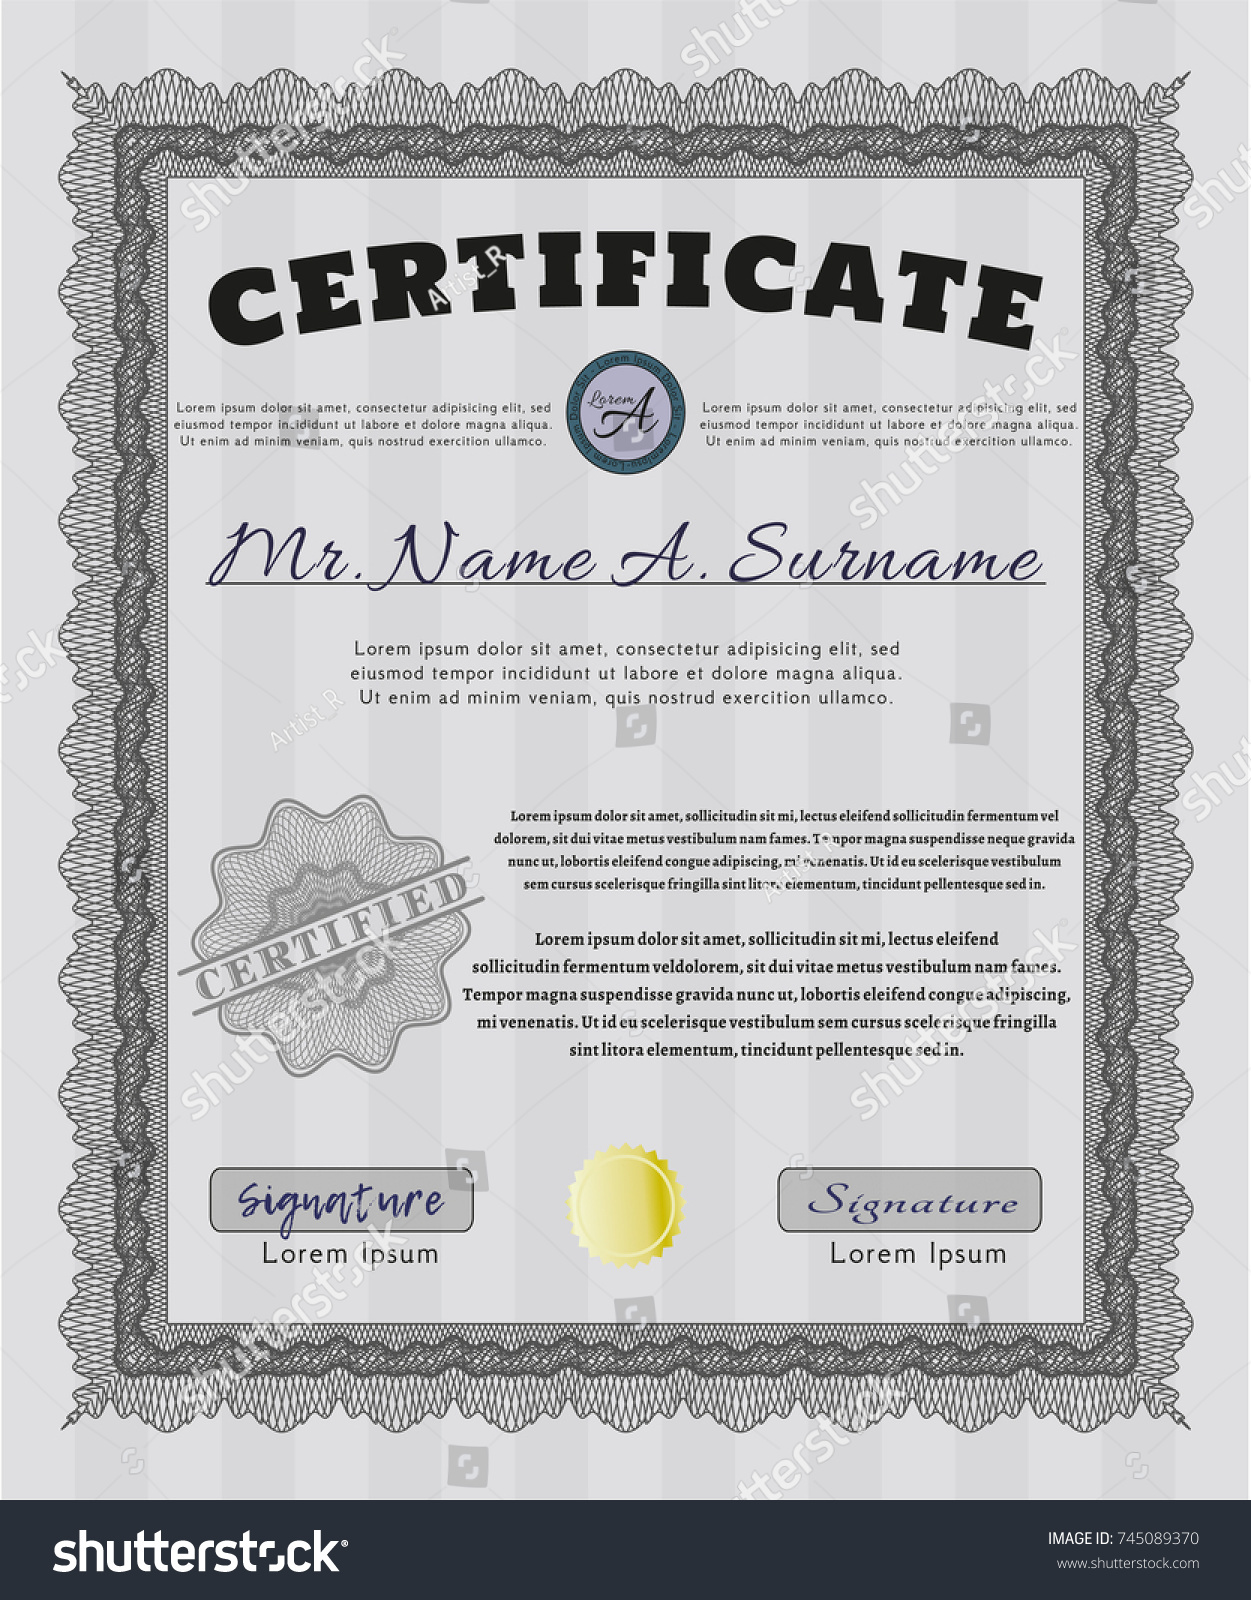 Grey certificate template customizable easy edit stock vector grey certificate template customizable easy to edit and change colors with great quality yelopaper Images